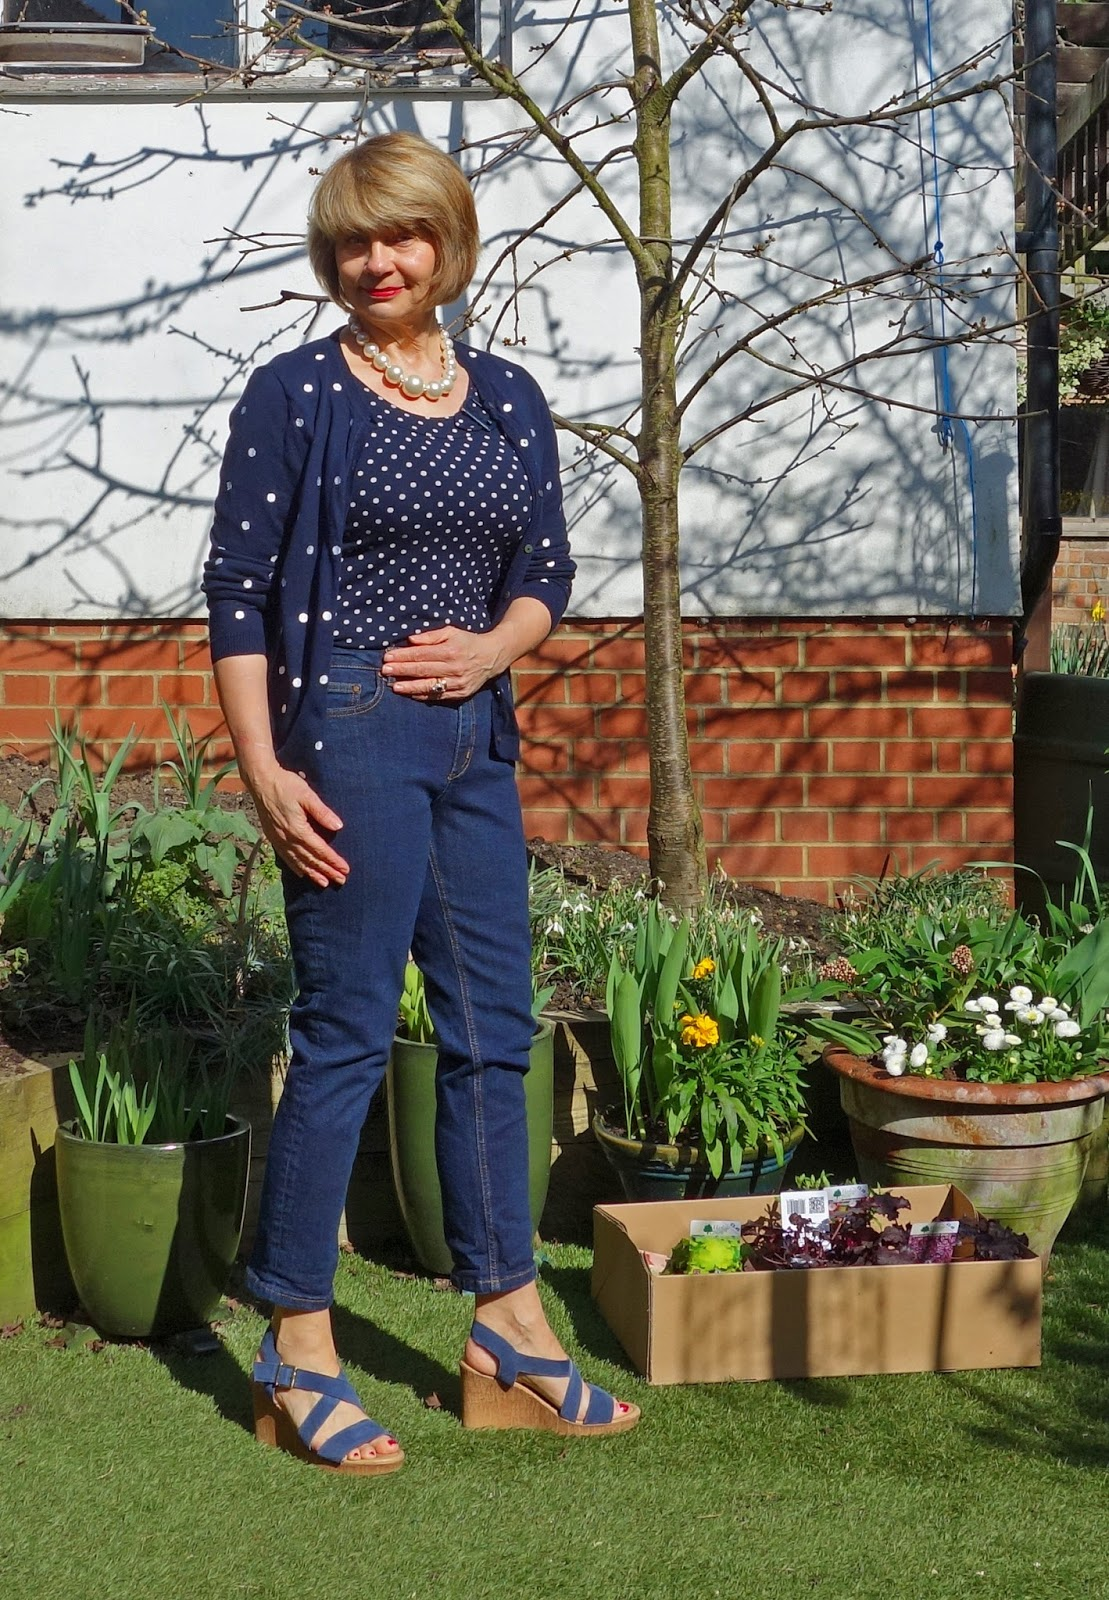 Image showing polka dots in a navy outfit with jeans and pearls